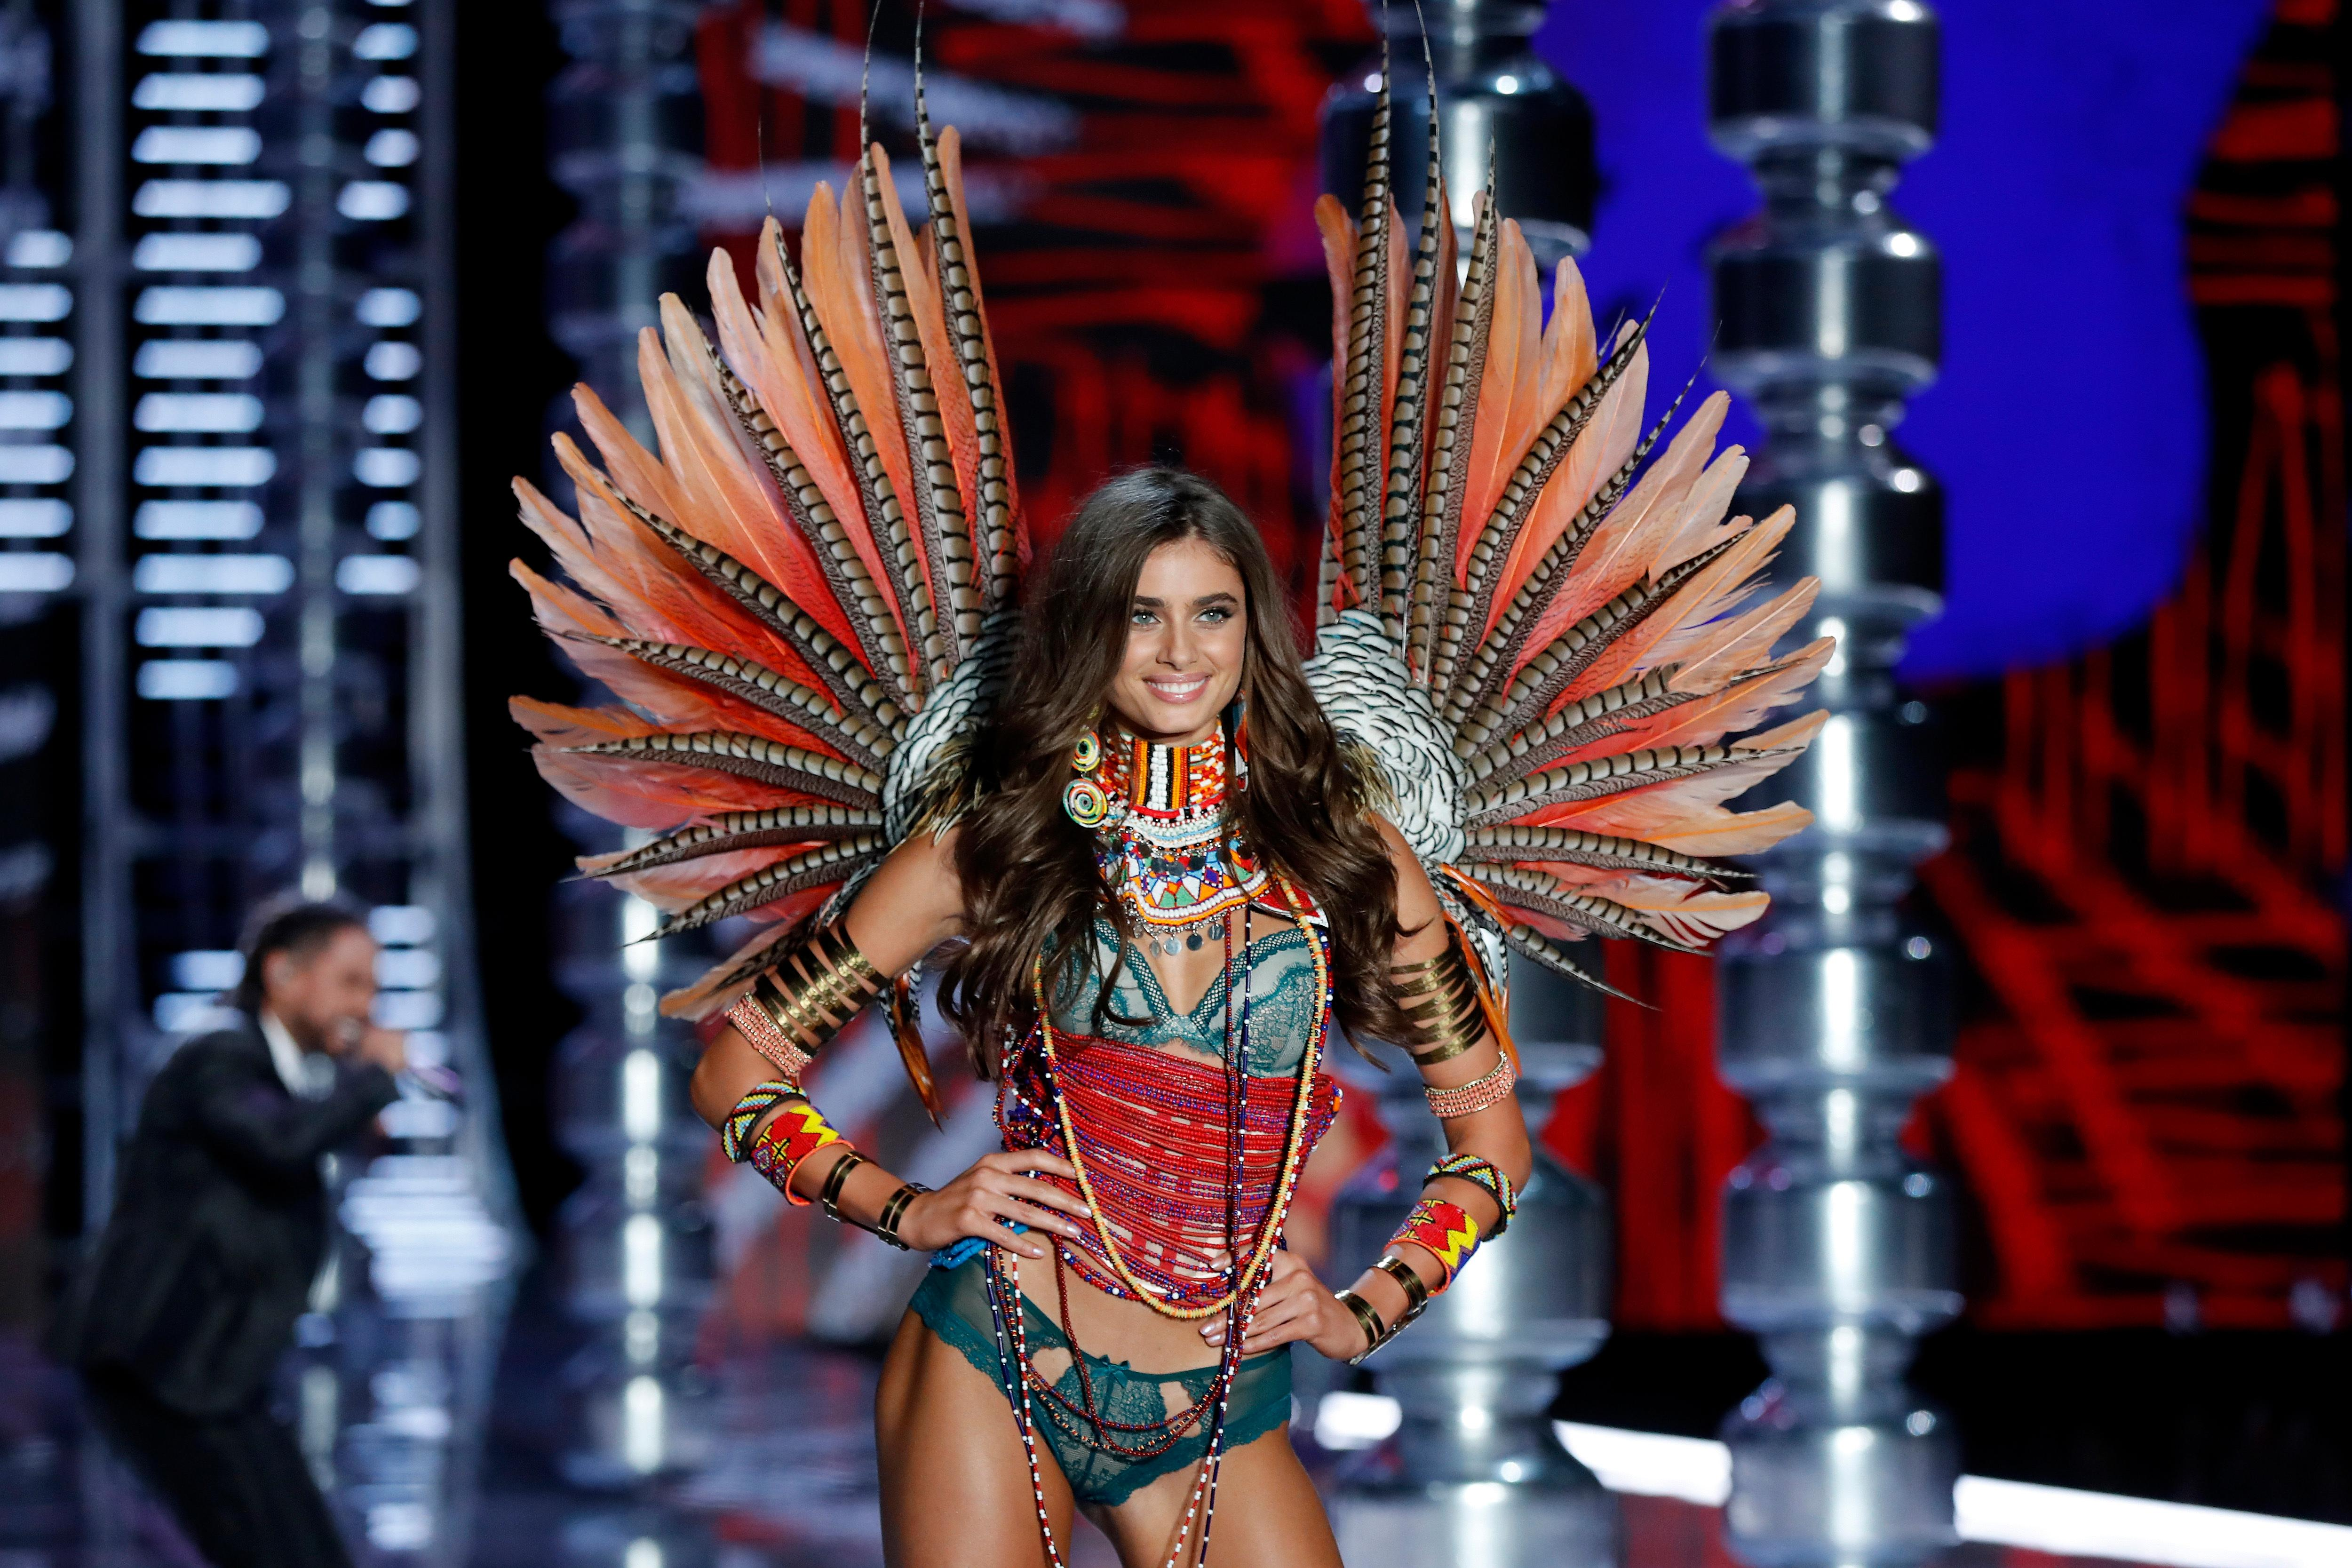 Model Taylor Hill wears a creation during the Victoria's Secret fashion show at the Mercedes-Benz Arena in Shanghai, China, Monday, Nov. 20, 2017. (AP Photo/Andy Wong)